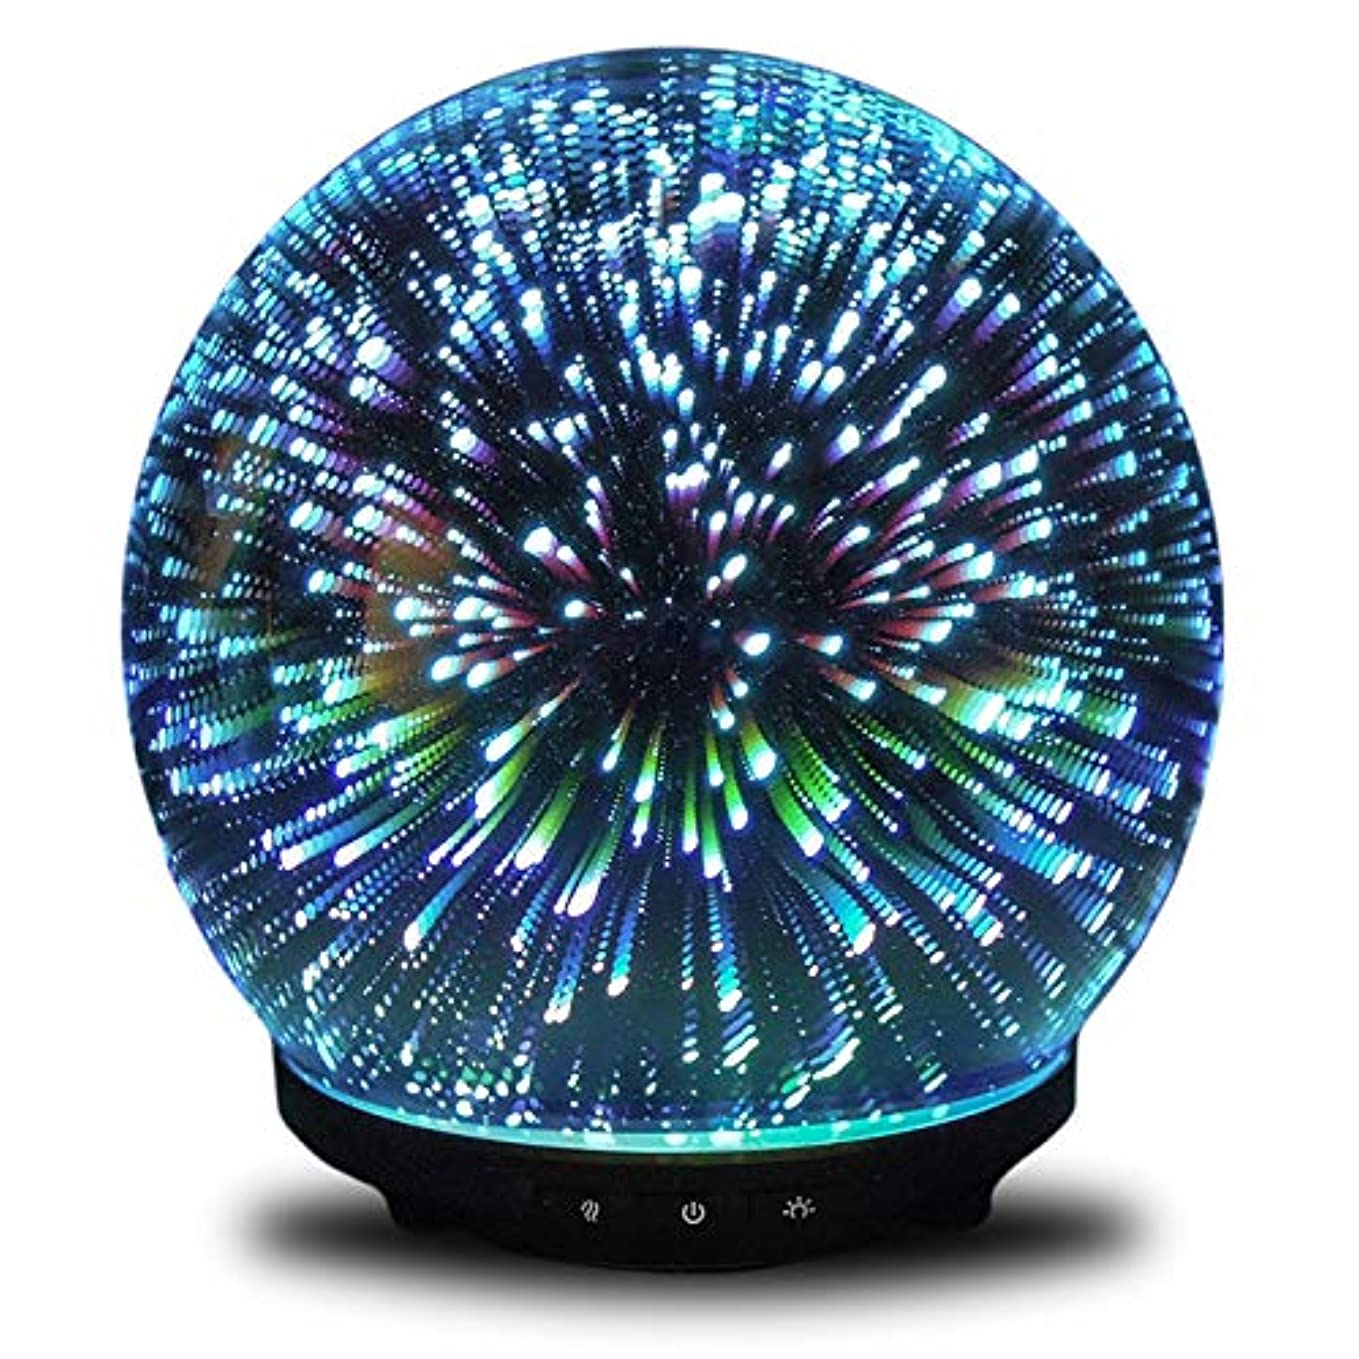 ORION by Simply Diffusers | Original 3D Aromatherapy Essential Oil Cool Mist Diffuser | 3 Button Technology for...